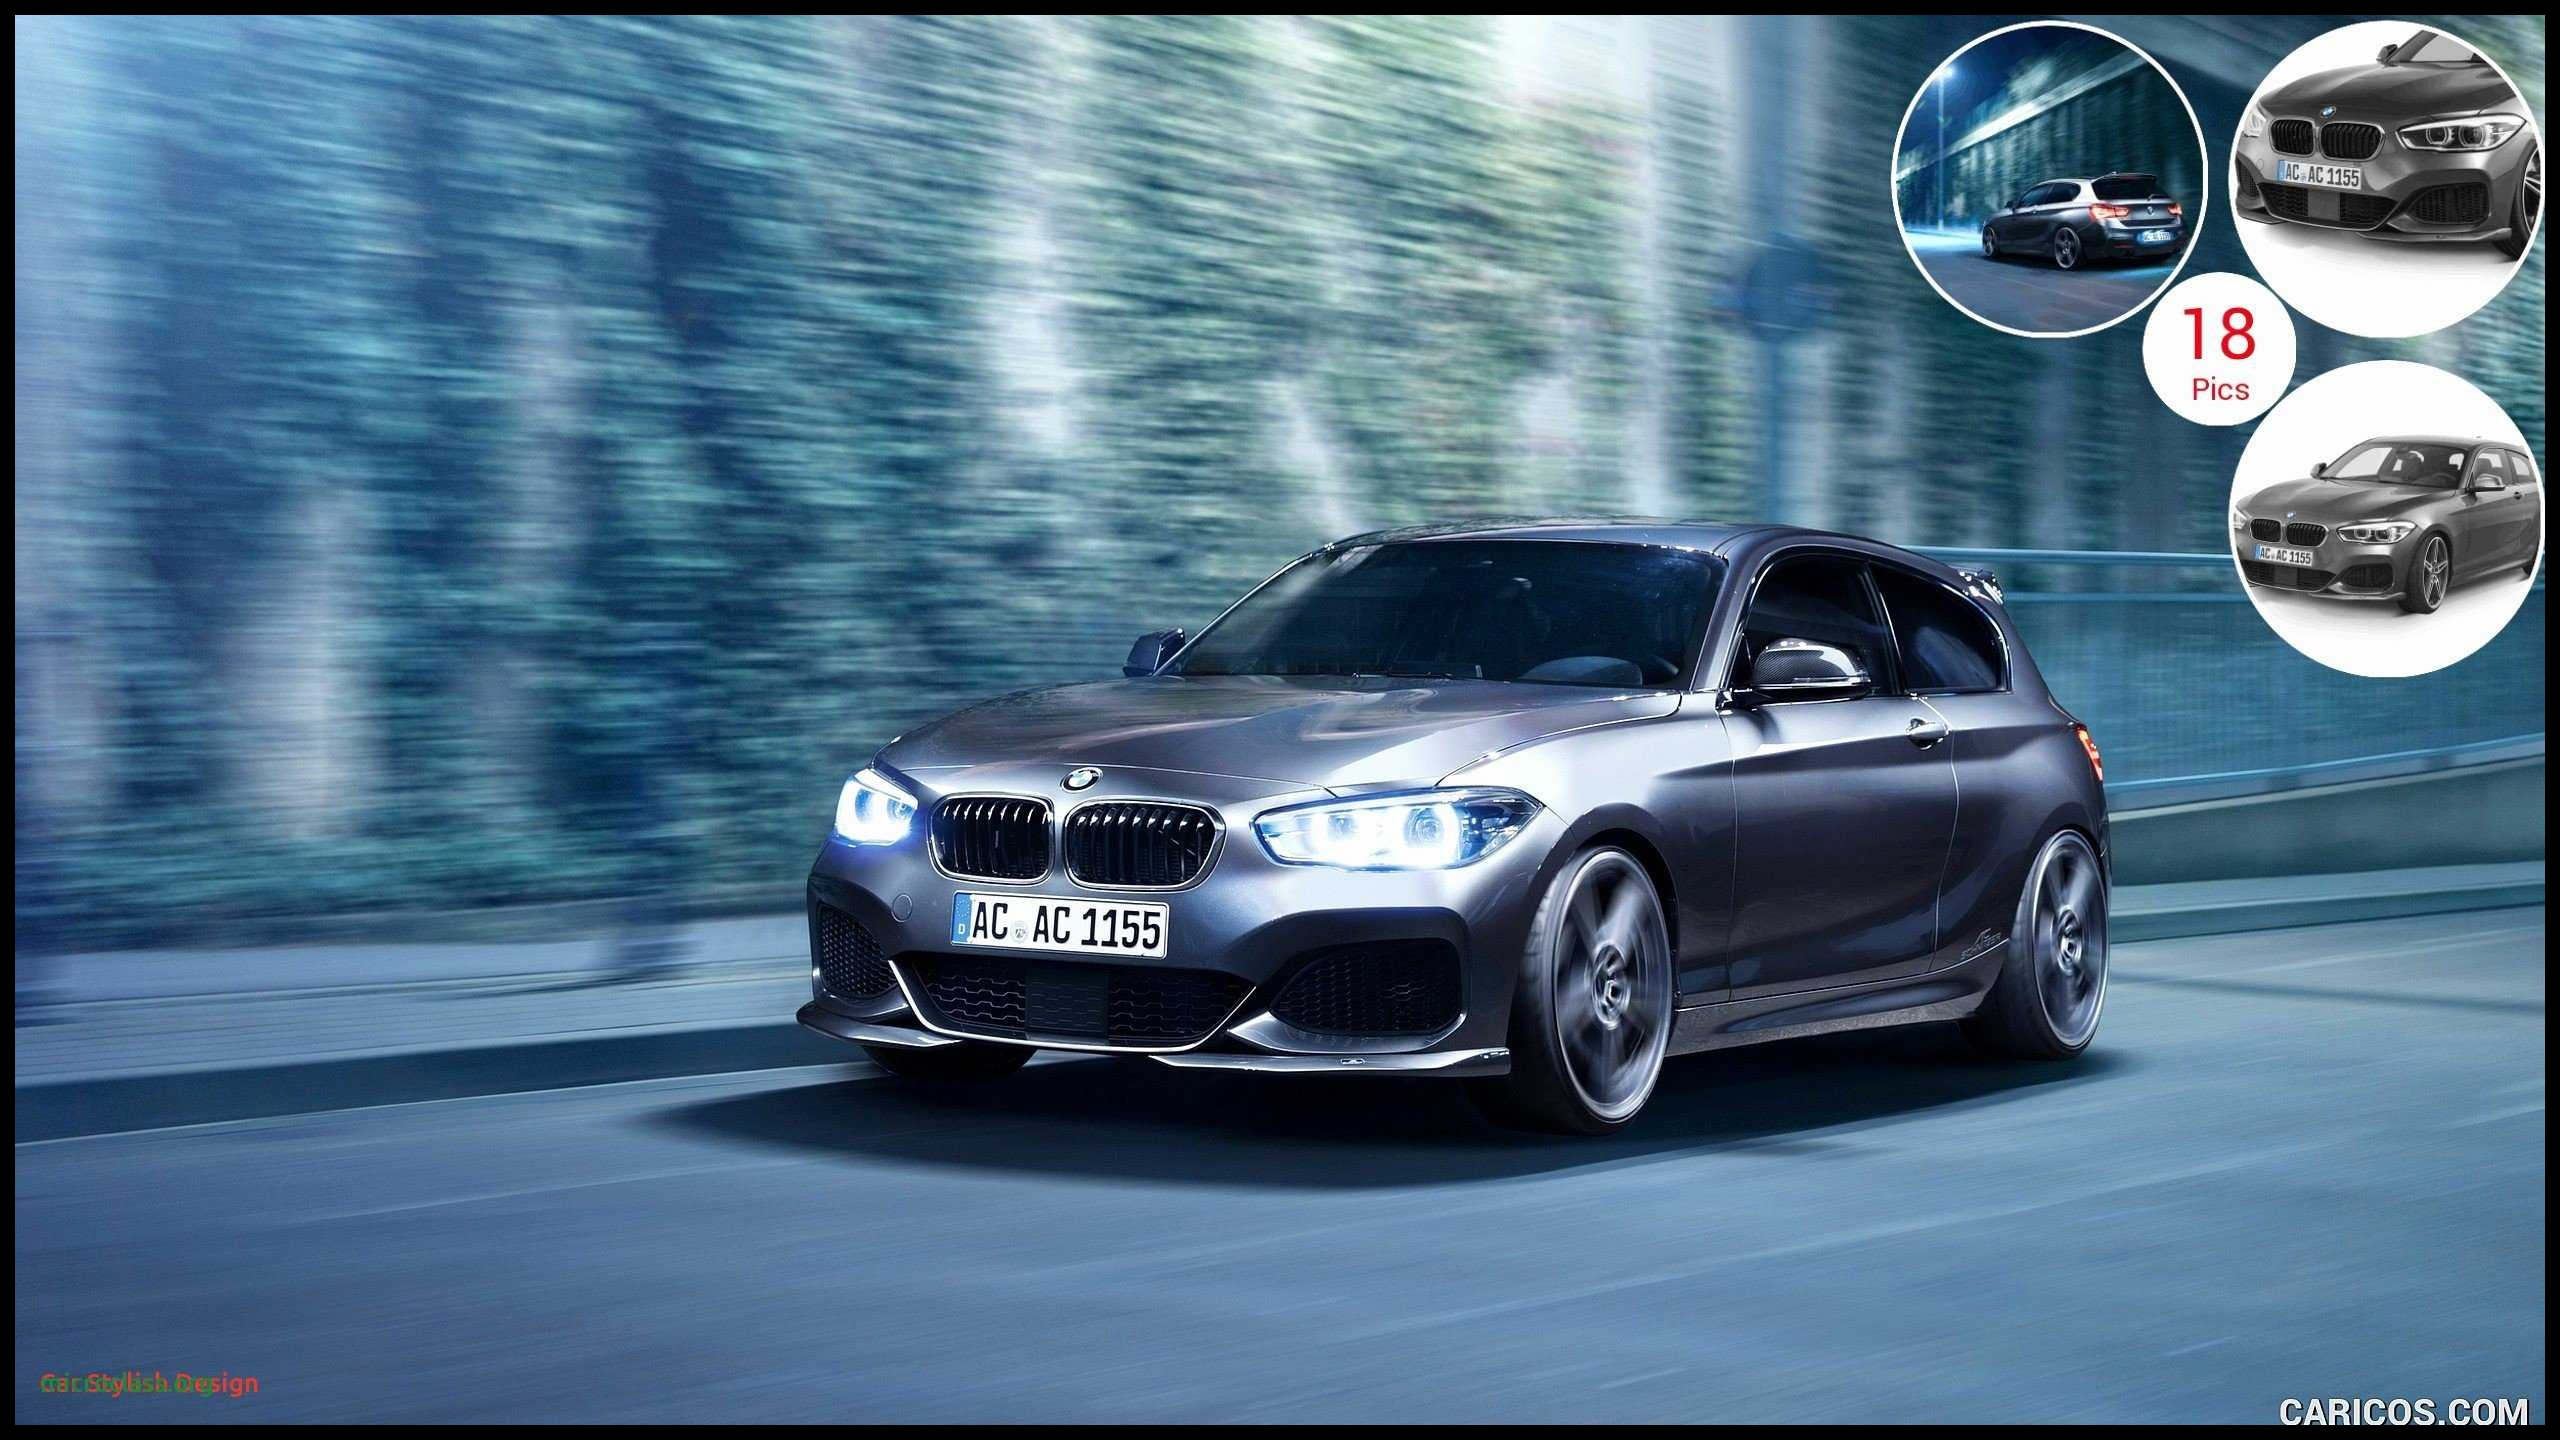 Latest Bmw Car Fullscreen Car Name Wallpaper